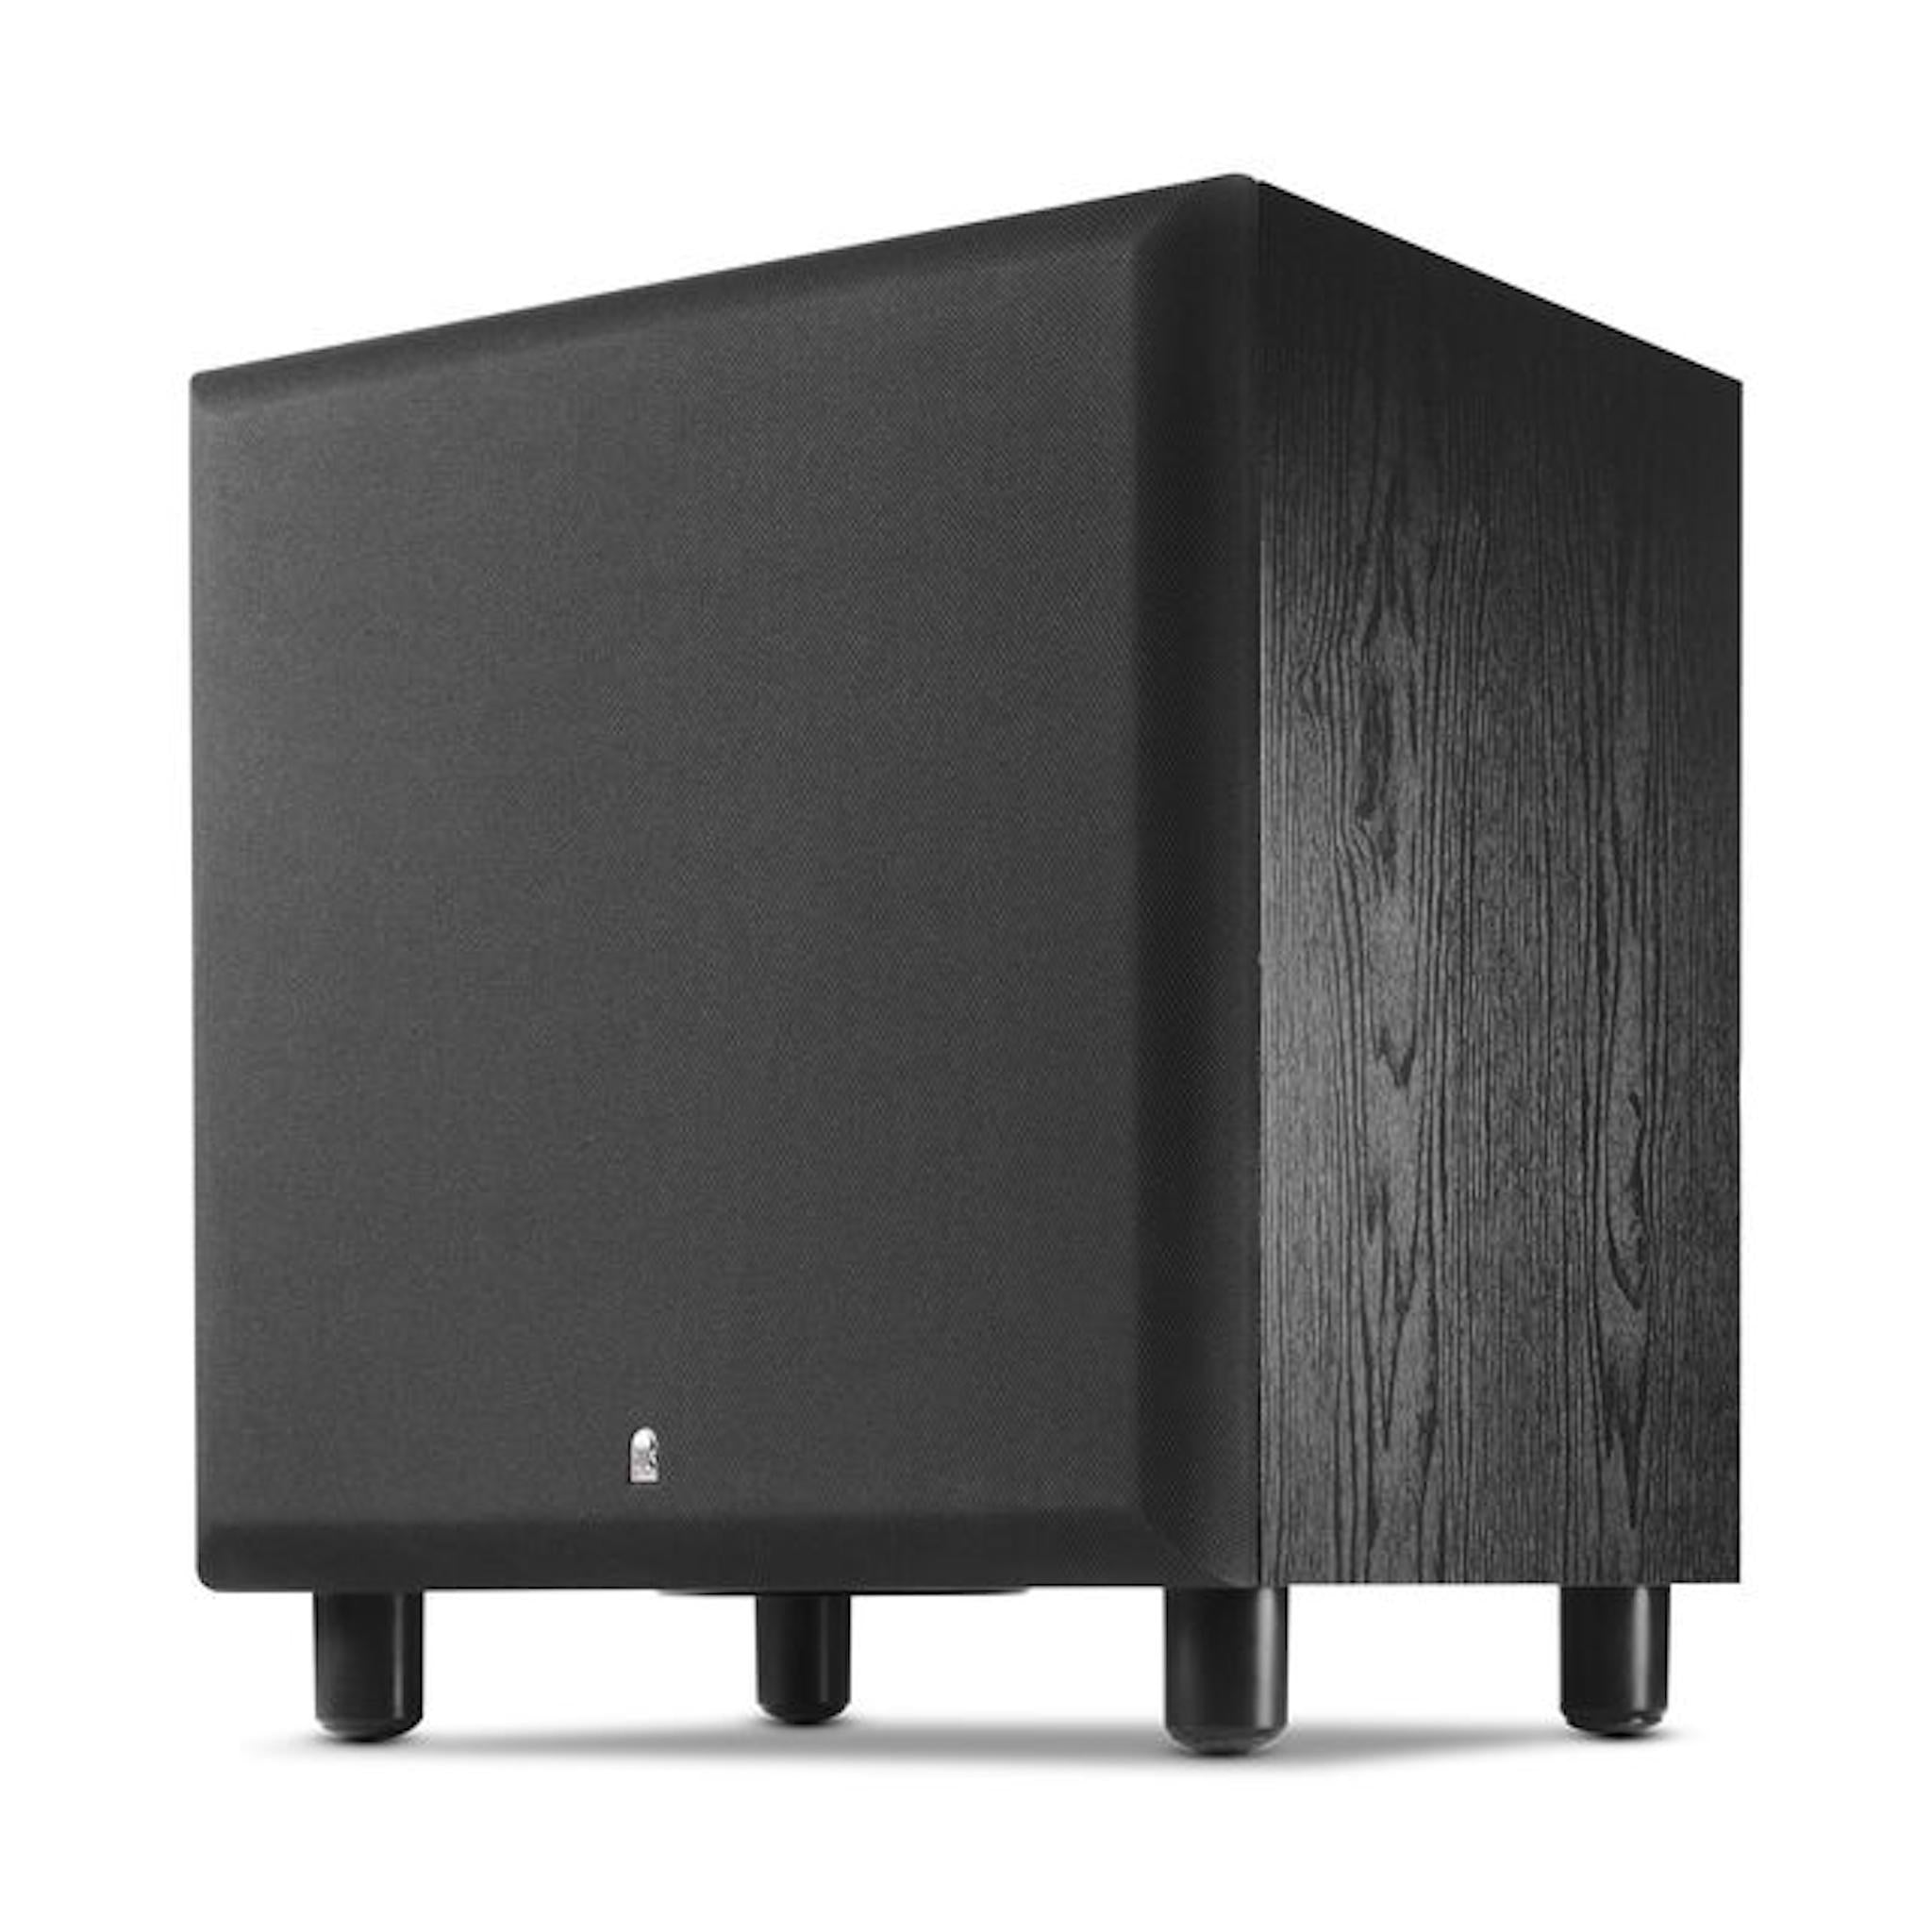 Revel B1 - Active subwoofer, Revel, Active Subwoofer - AVStore.in